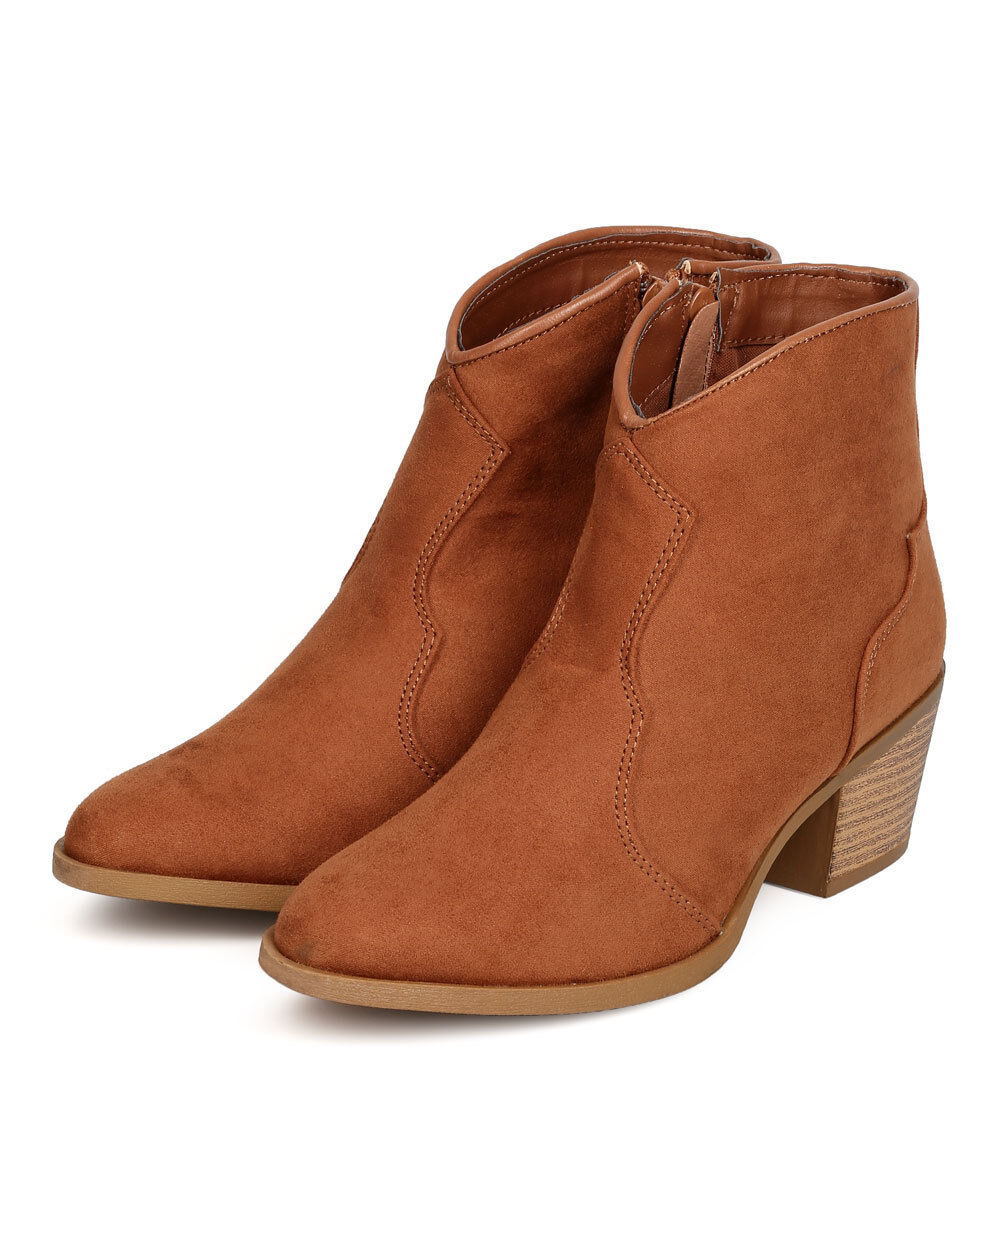 New Women Qupid Rover-15 Faux Suede Pointy Toe Cowboy Bootie